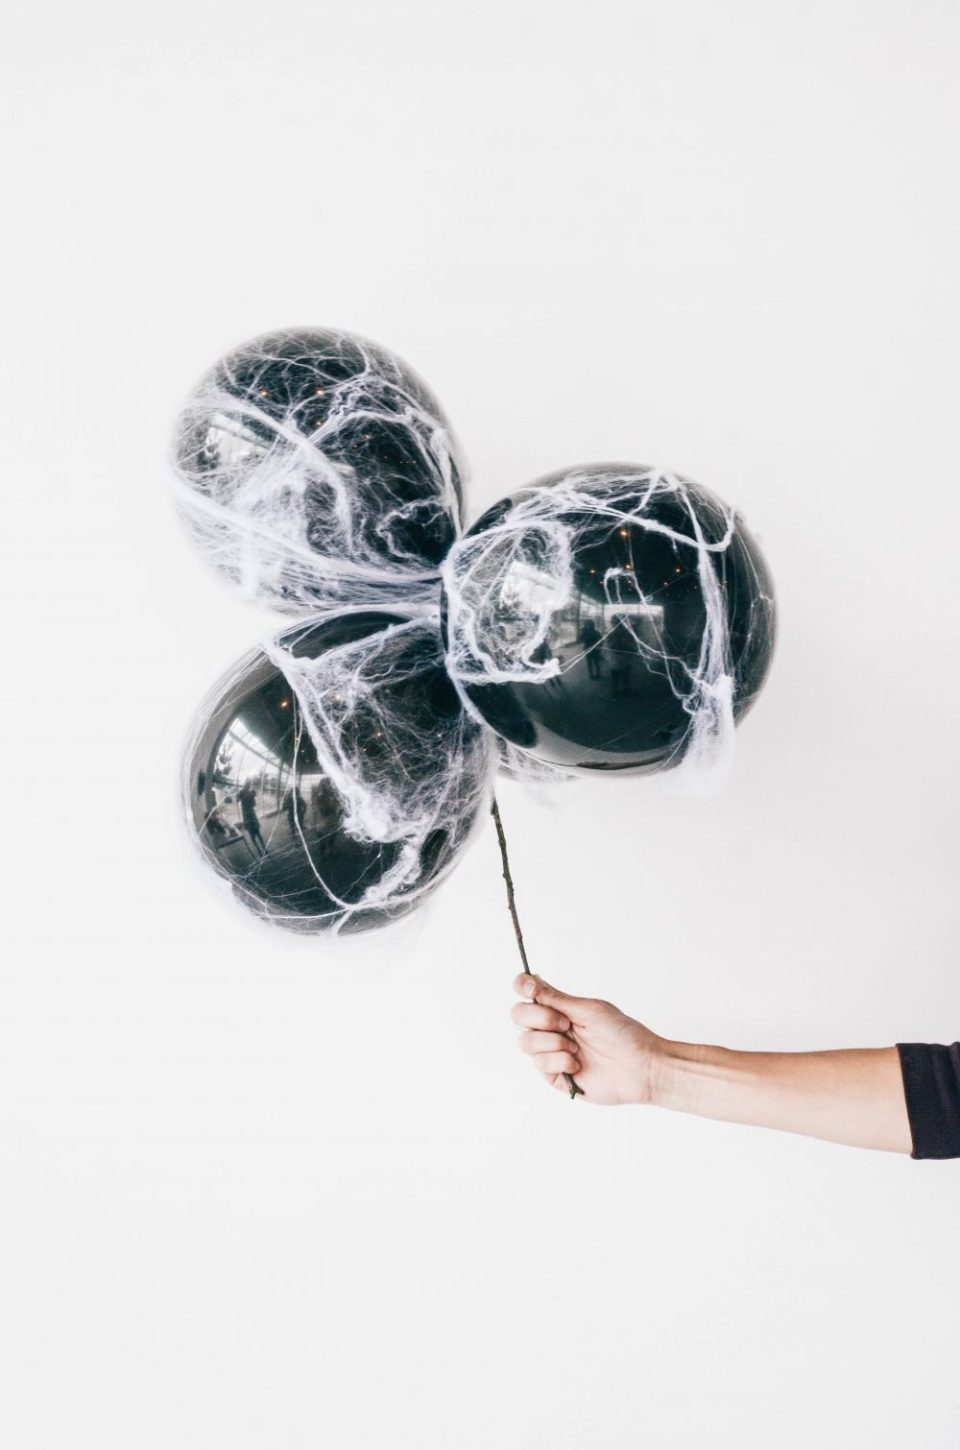 DIY Spooky Spiderweb Balloon for Halloween